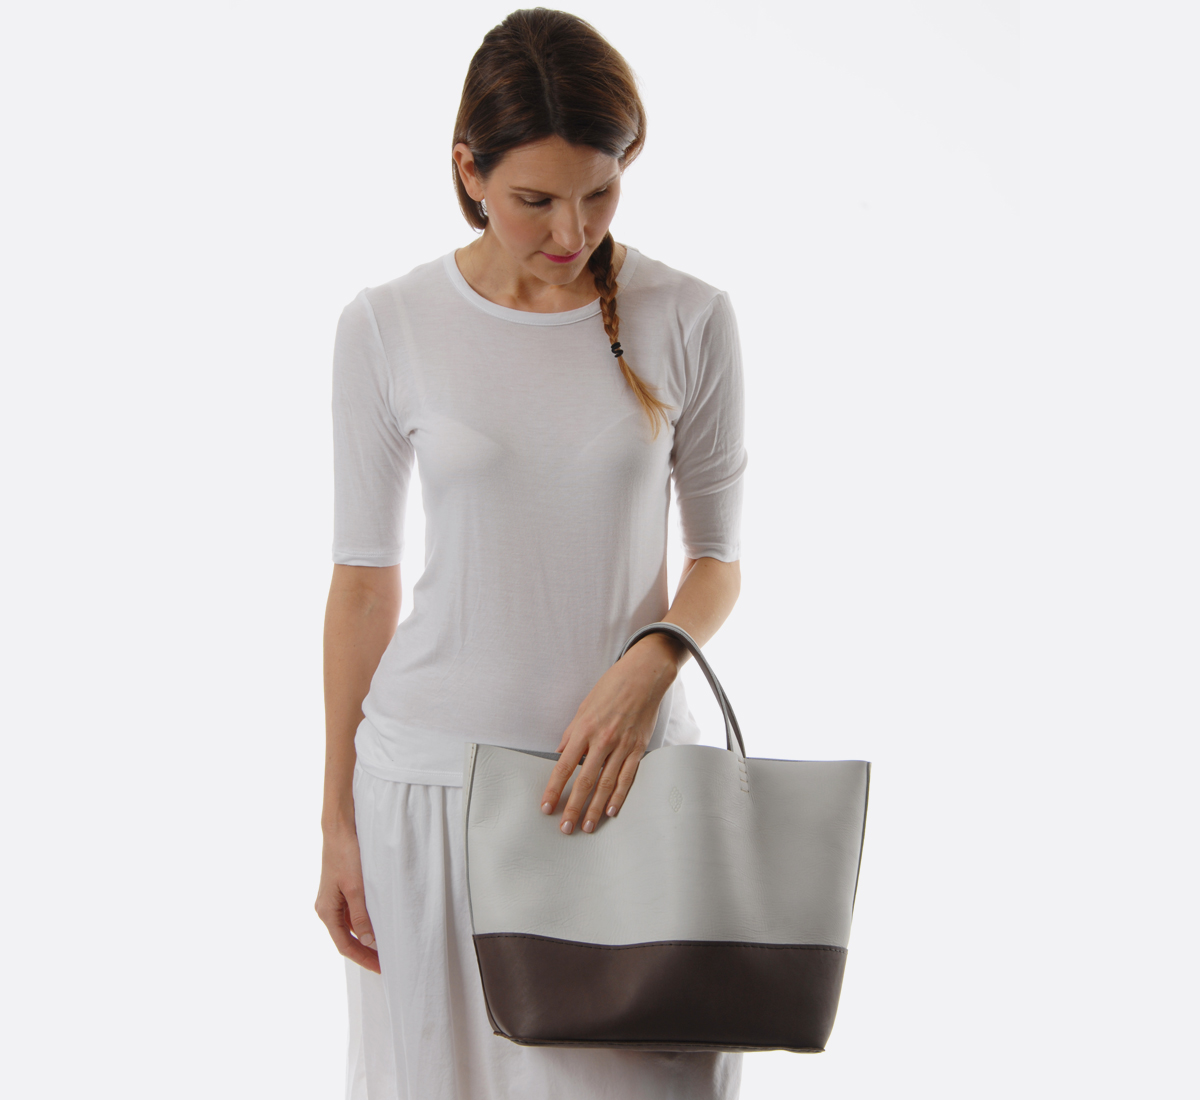 Winter white and plum basket bag duo by petite maison christiane from roztayg - Petite maison christiane ...